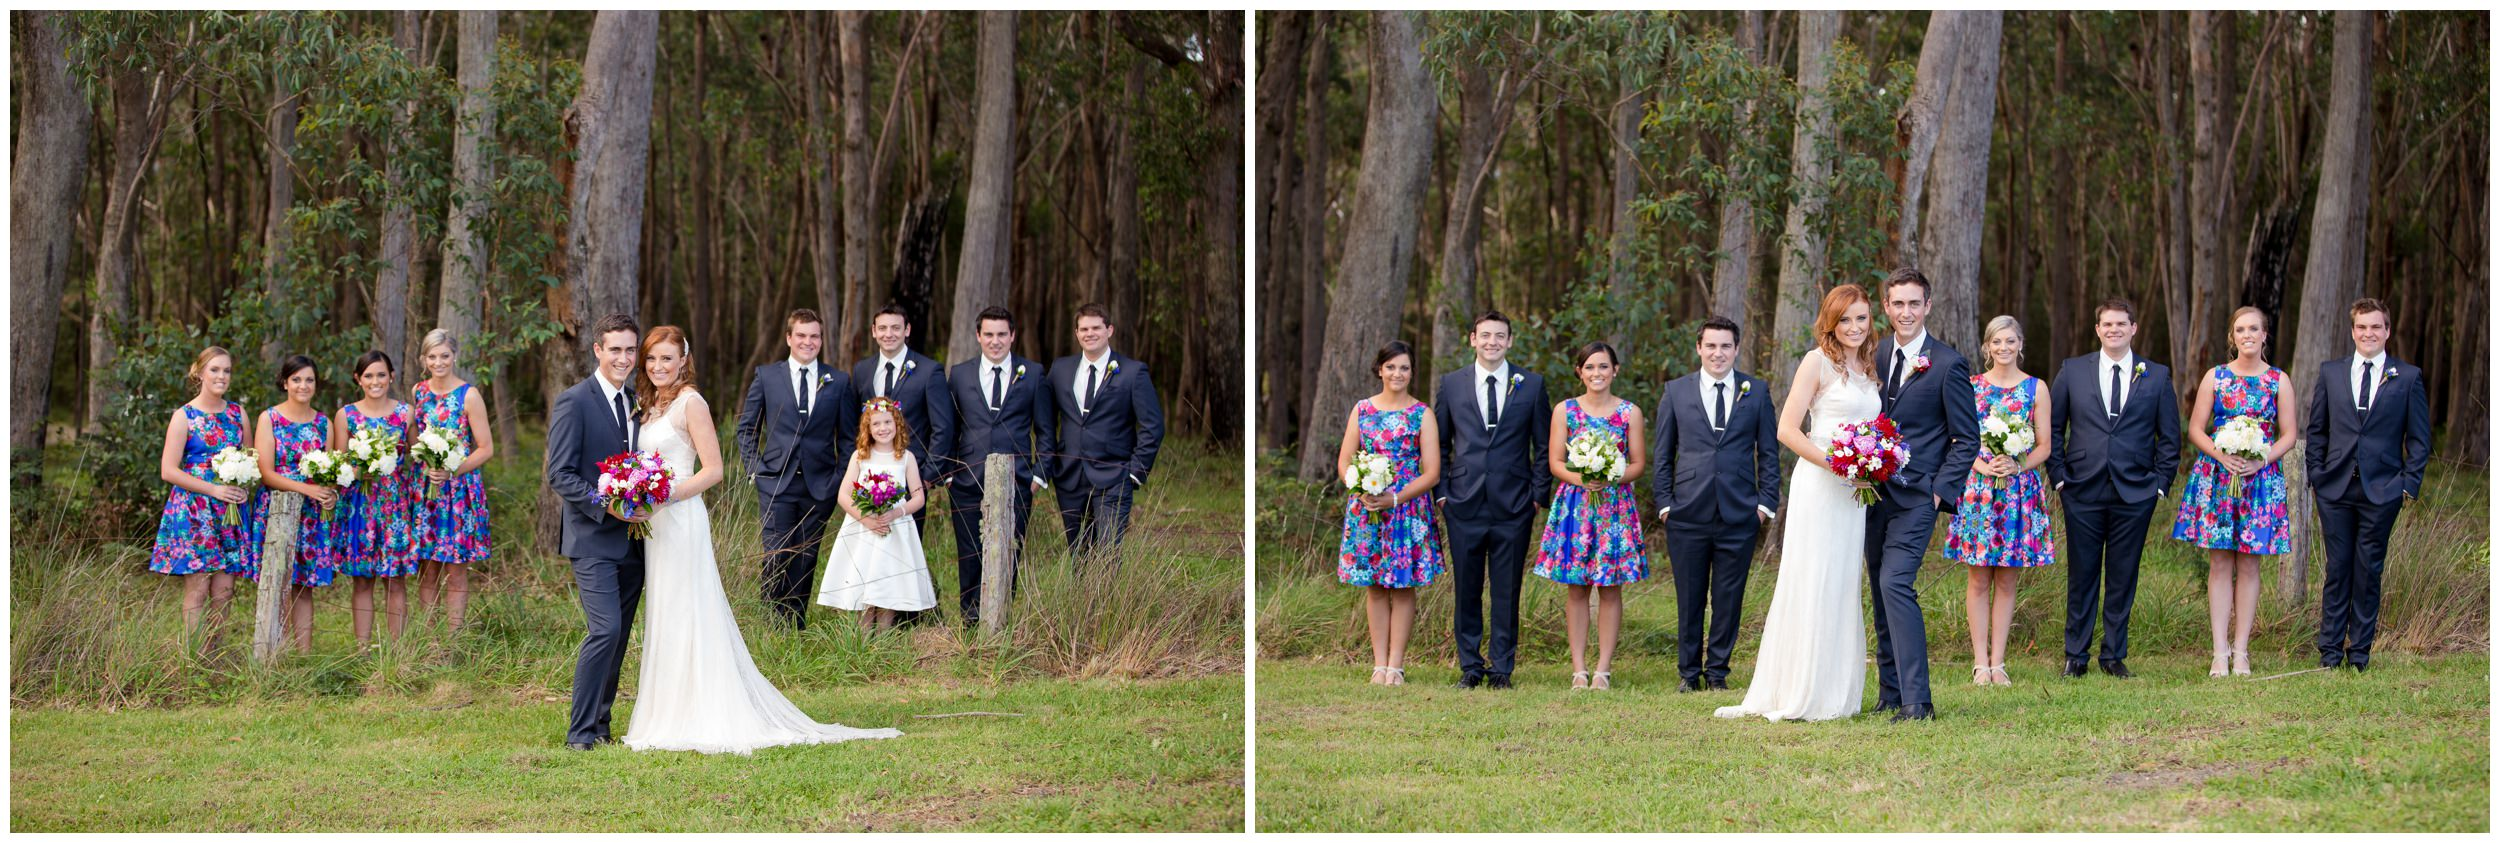 Dubbo Wedding Photographer Blue Mountains Wedding_0146.jpg